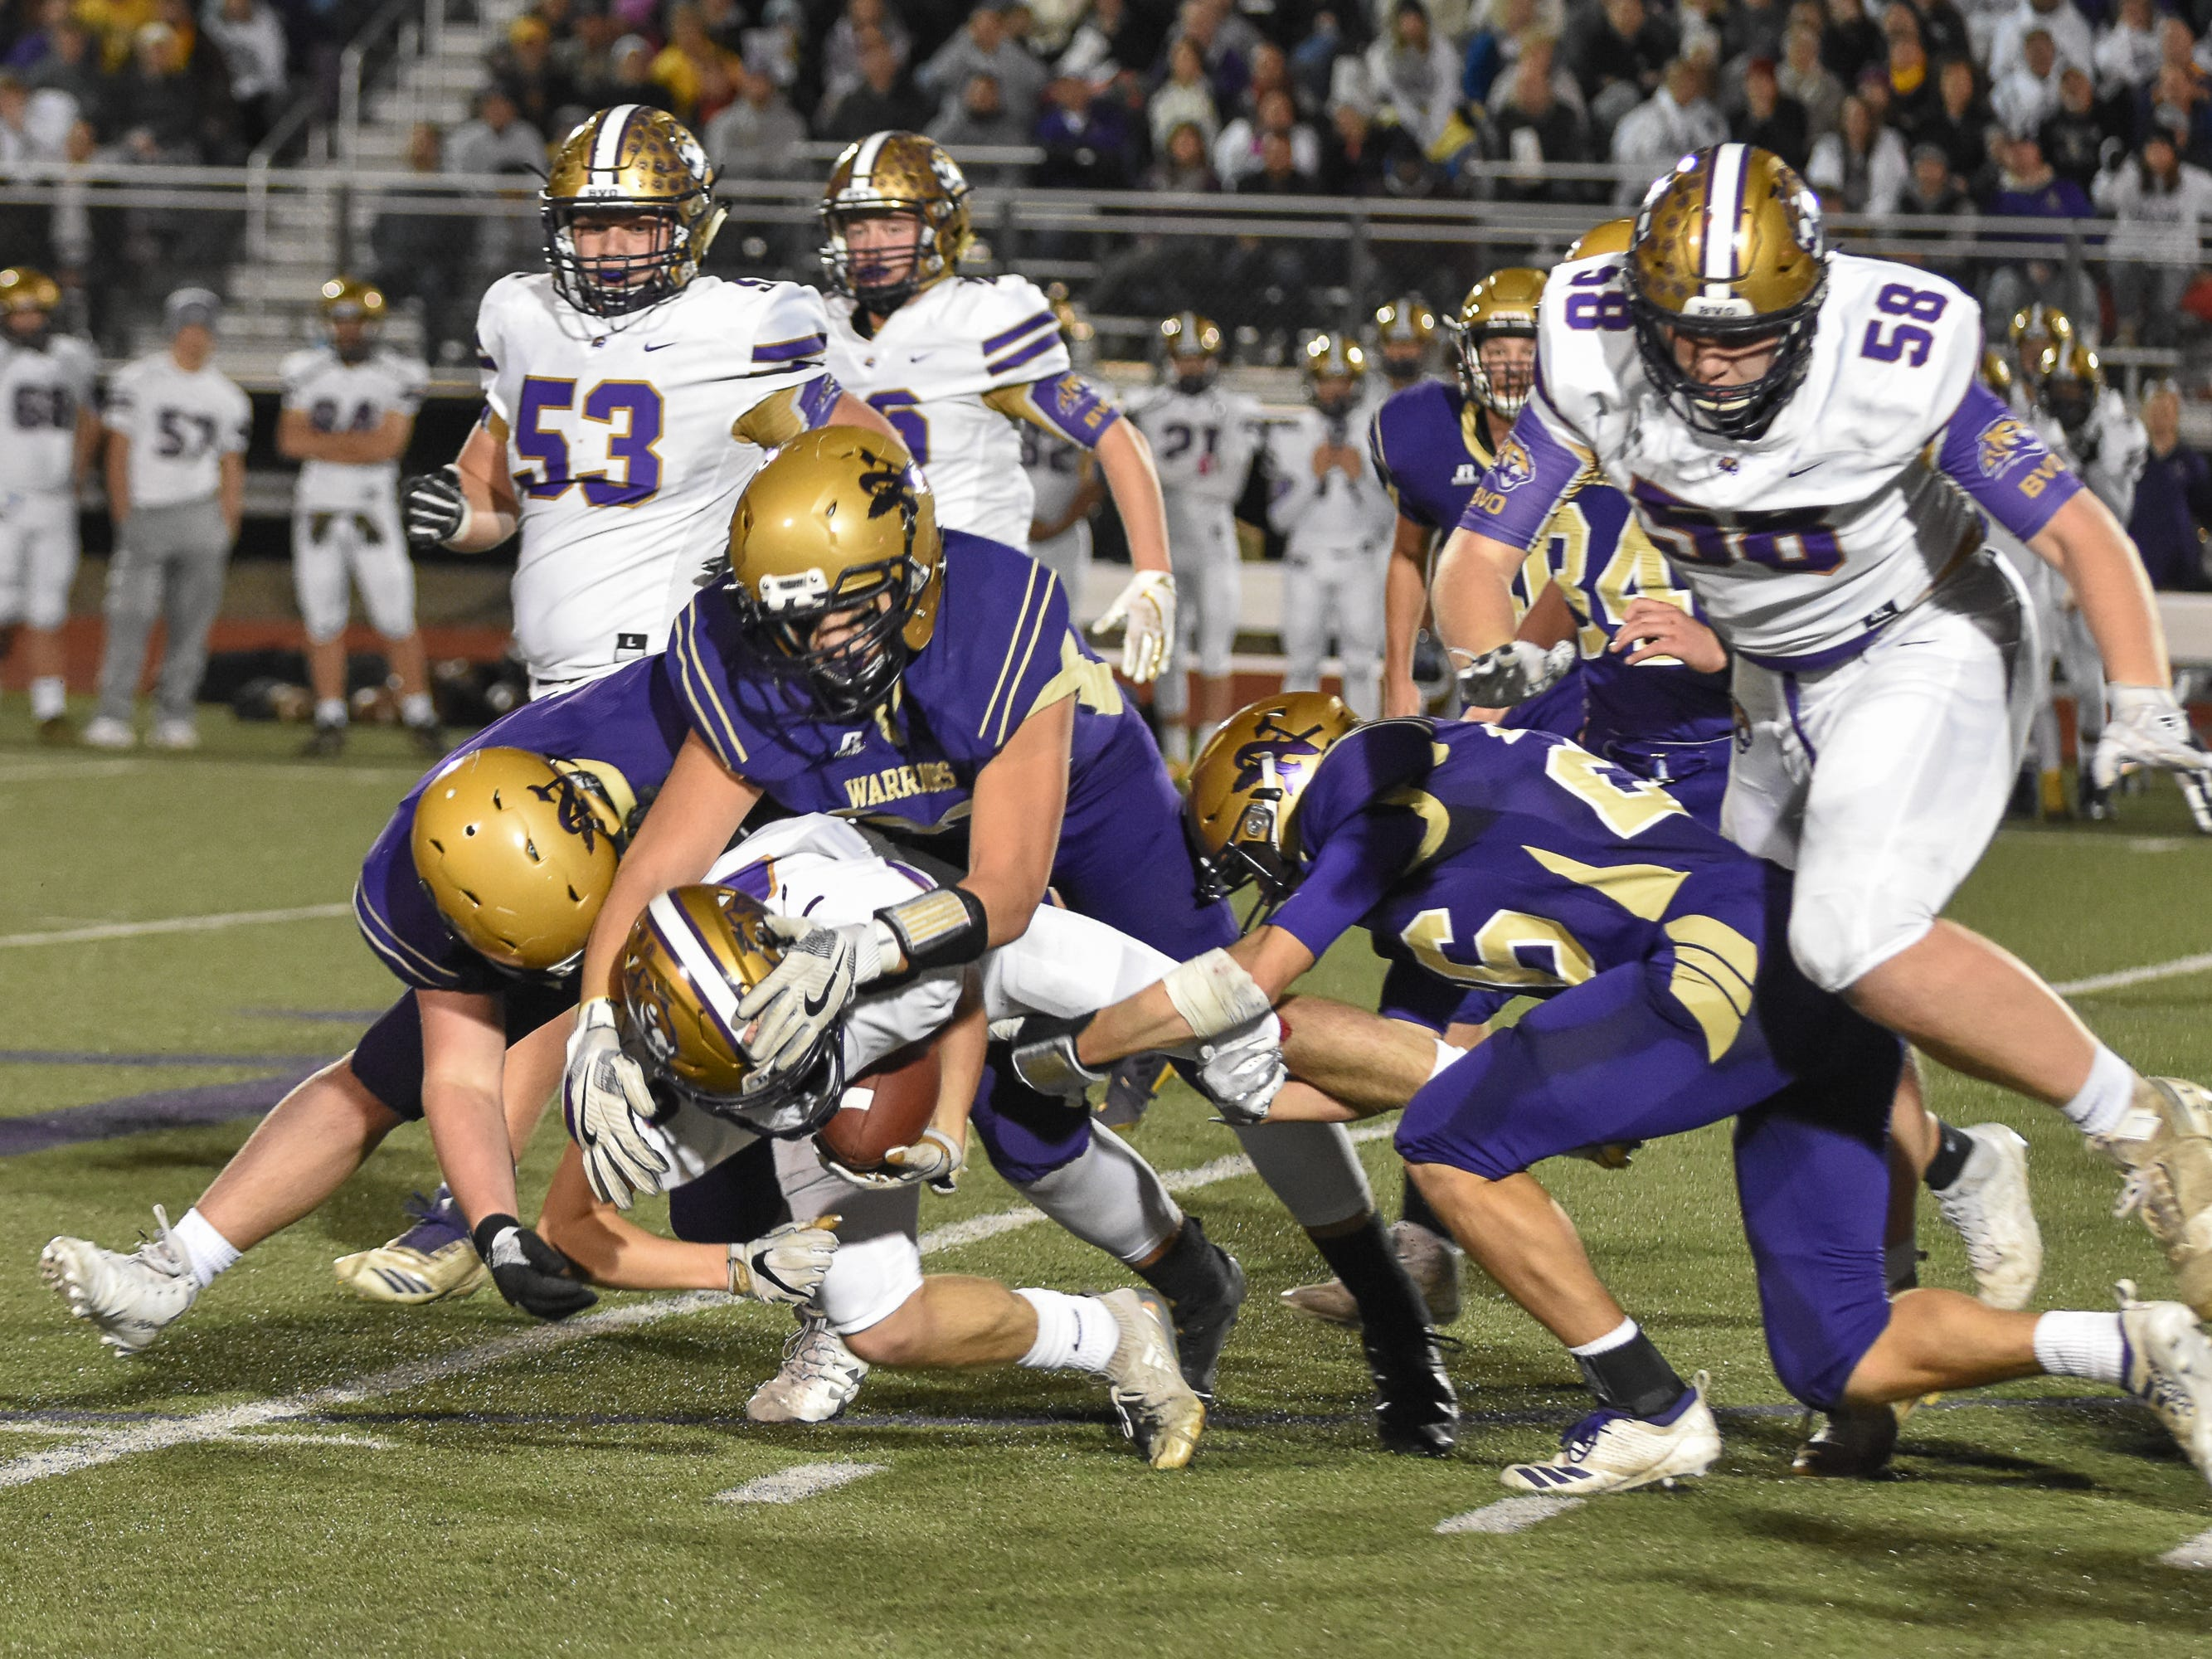 Norwalk's Tyler Robertson, Ethank Stockwell and Carson Raper tackle Spencer's Griffin Garnatz during a first-round playoff game Friday in Norwalk. Spencer ended Norwalk's season Oct. 26, 2018, with a 24-20 win in the first round of the Class 3A playoffs.